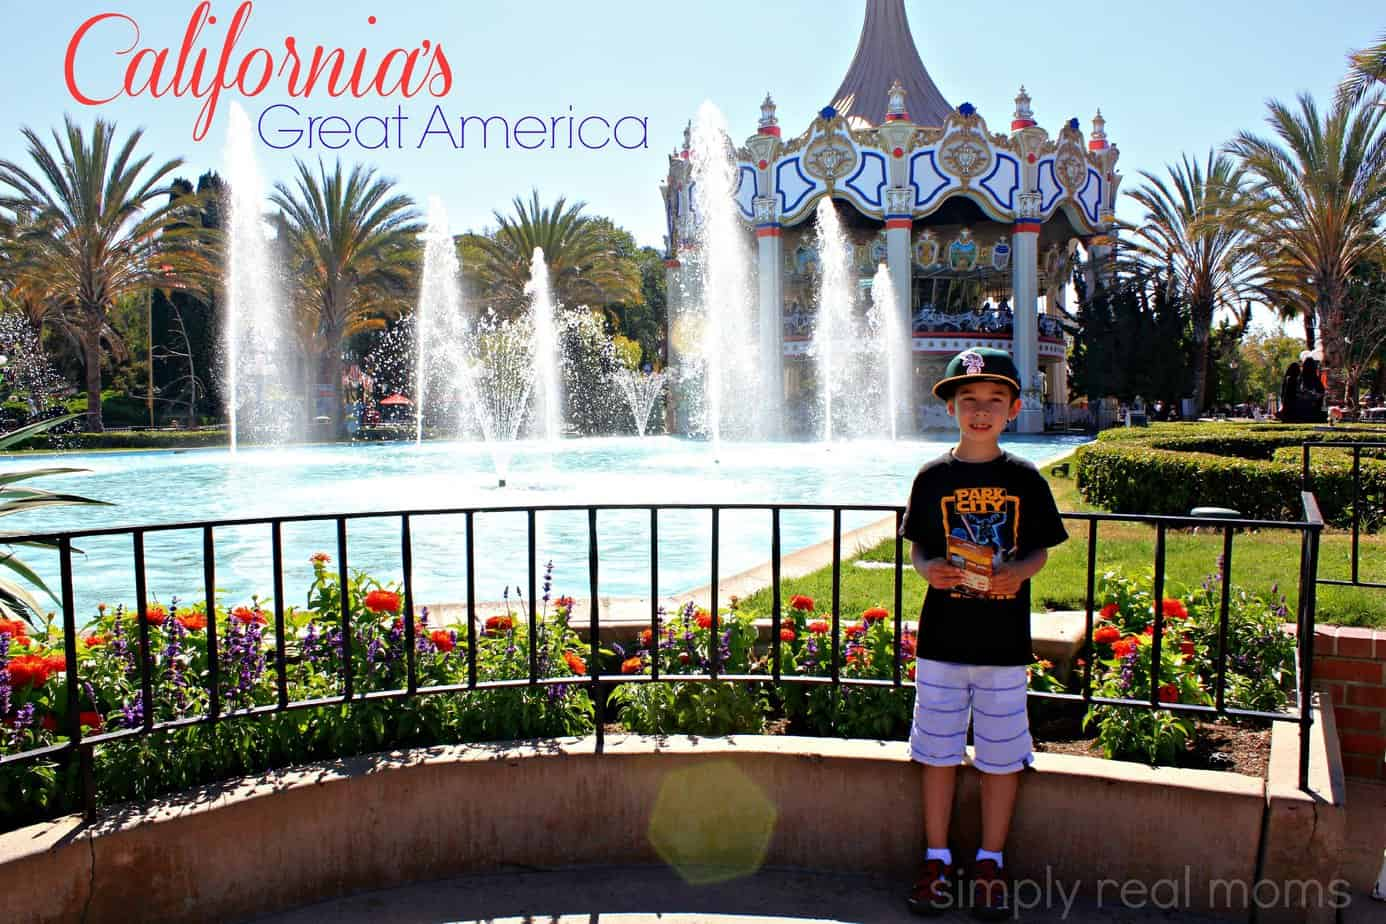 Visiting California's Great America: Family Fun 1